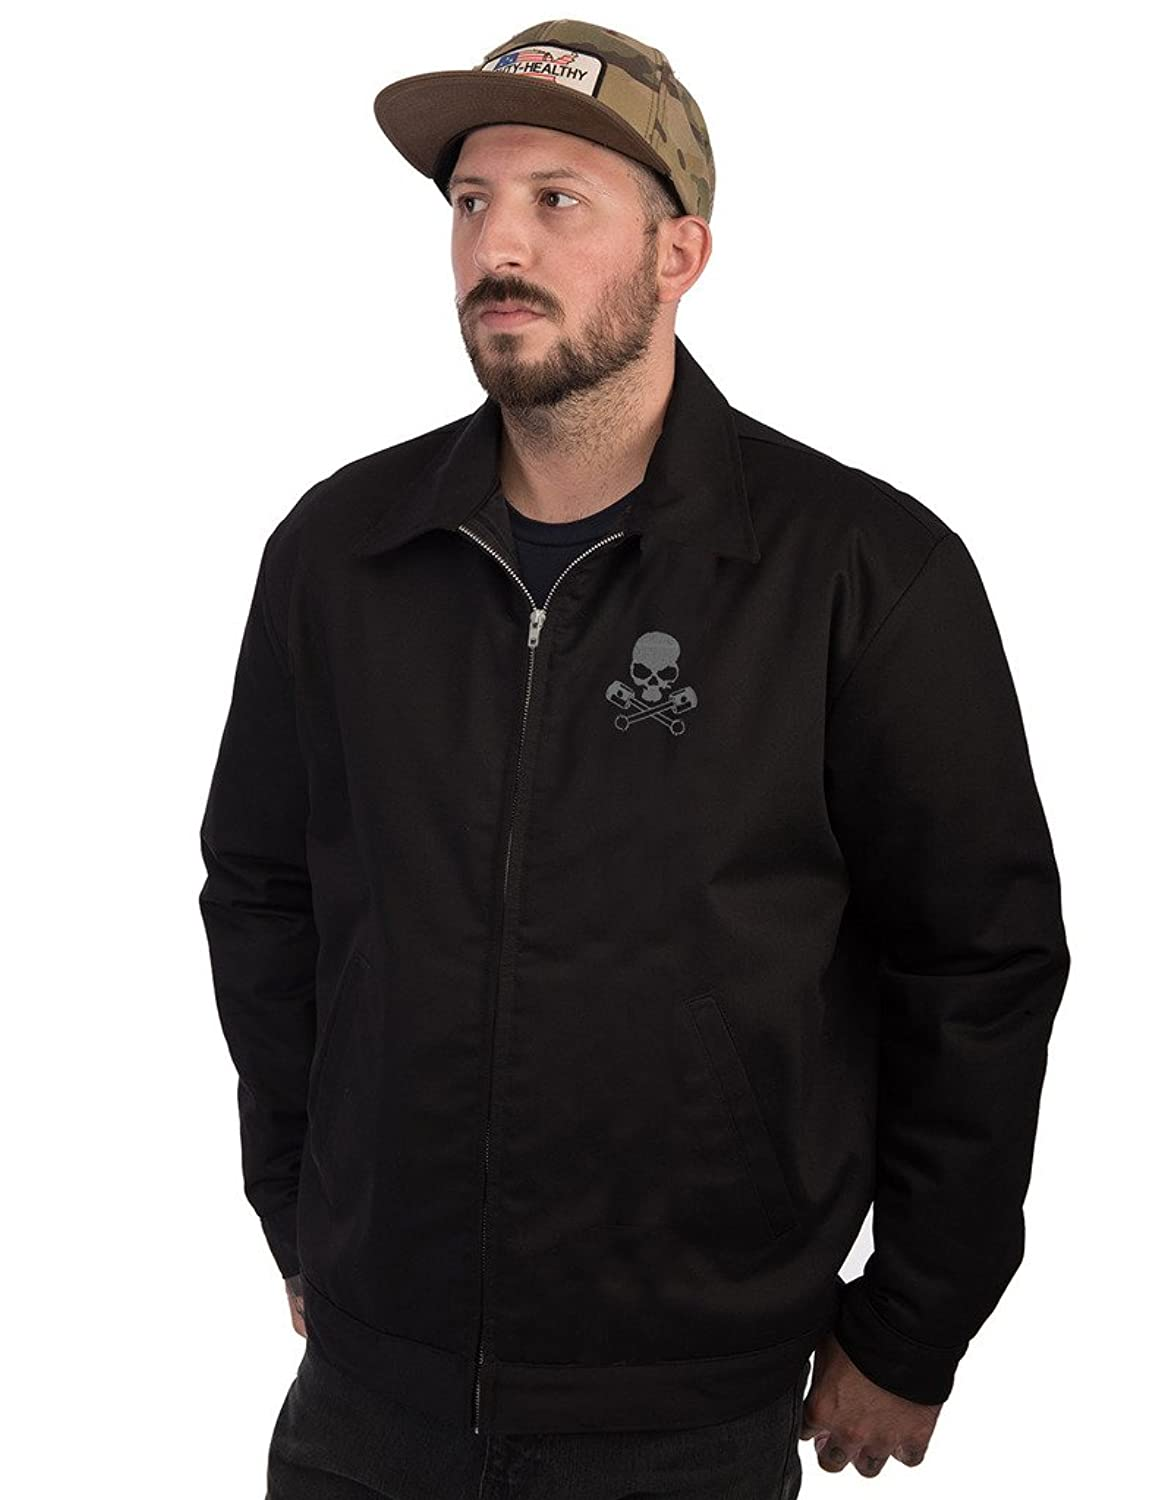 Men's Vintage Style Coats and Jackets Racing Rebels Jacket Black $97.99 AT vintagedancer.com